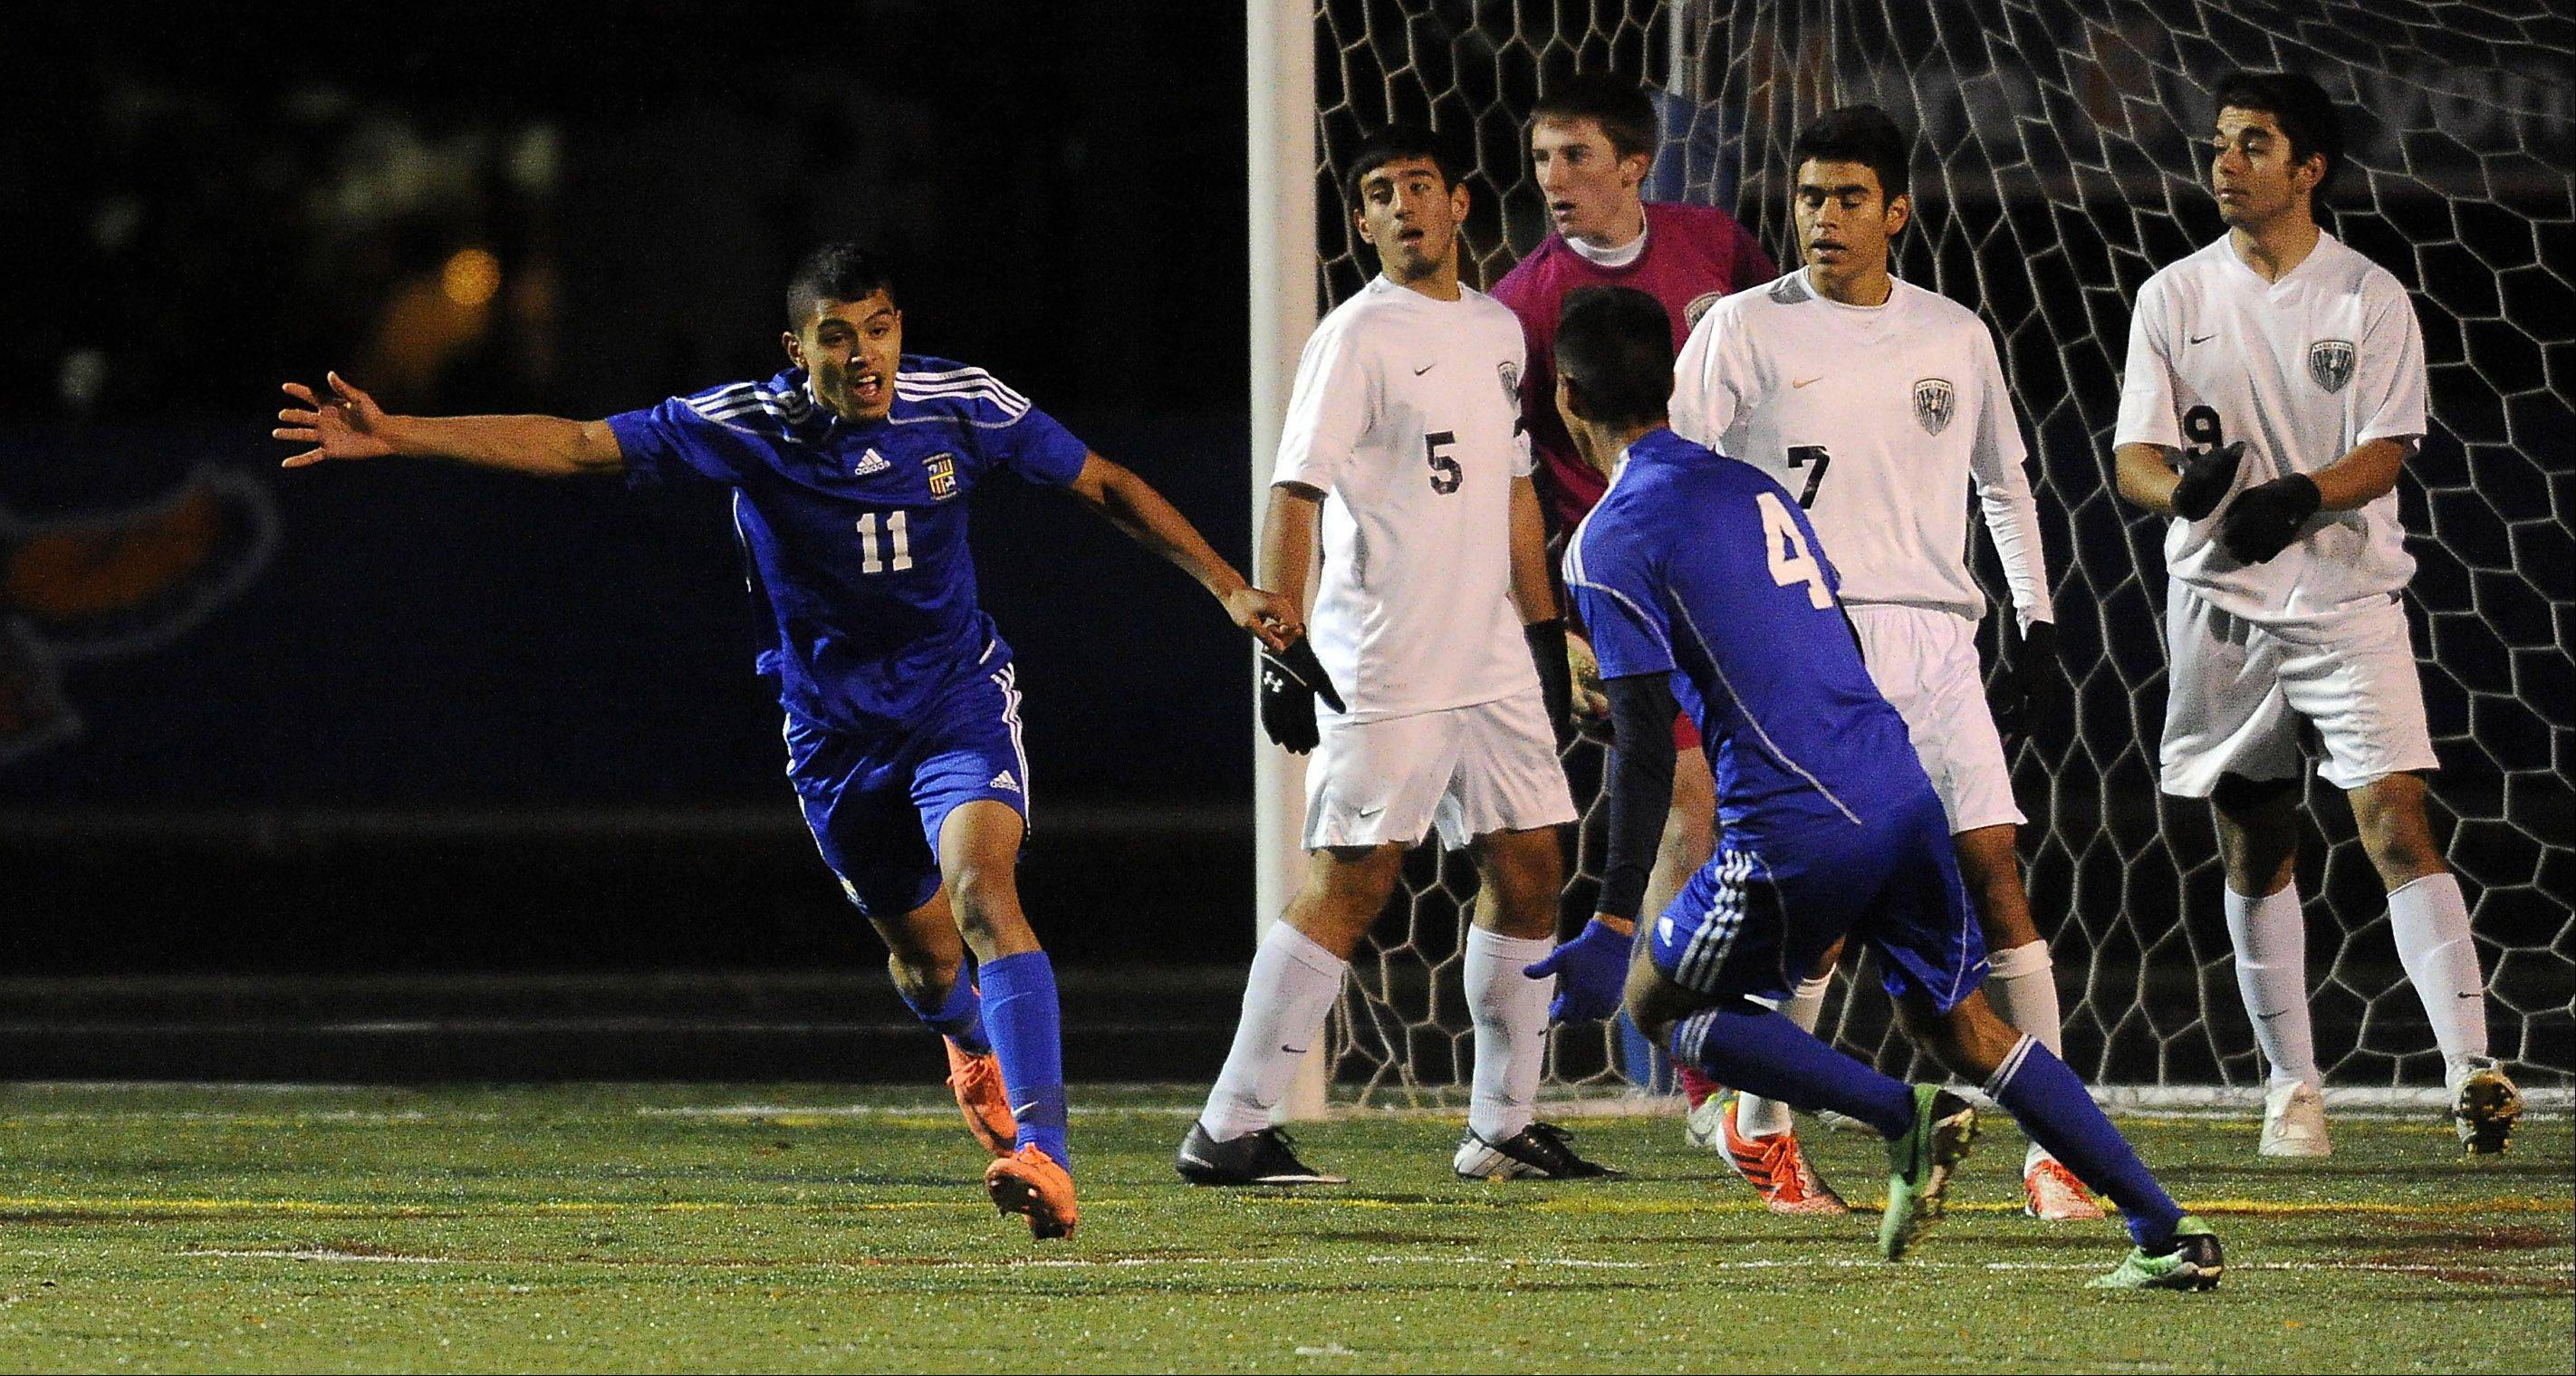 Wheeling's Luis Herrera scores the first goal as Lake Park players look stunned in the first period in the boys Class 3A state semifinals at Hoffman Estates High School on Friday.